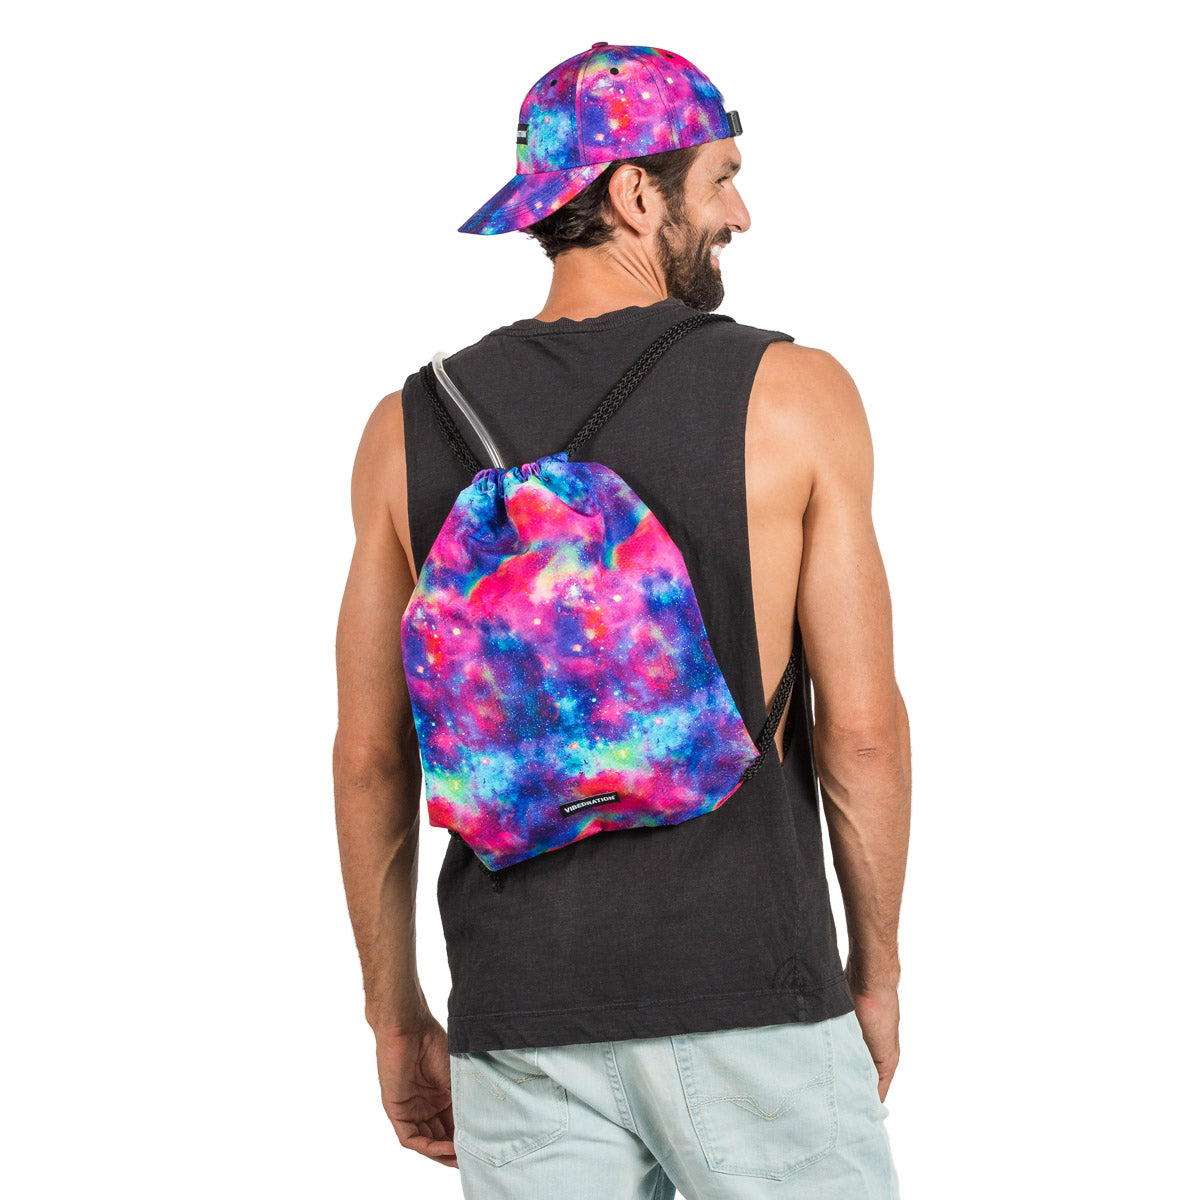 Galaxy Printed Drawstring Bag. Hydration Bladder Included